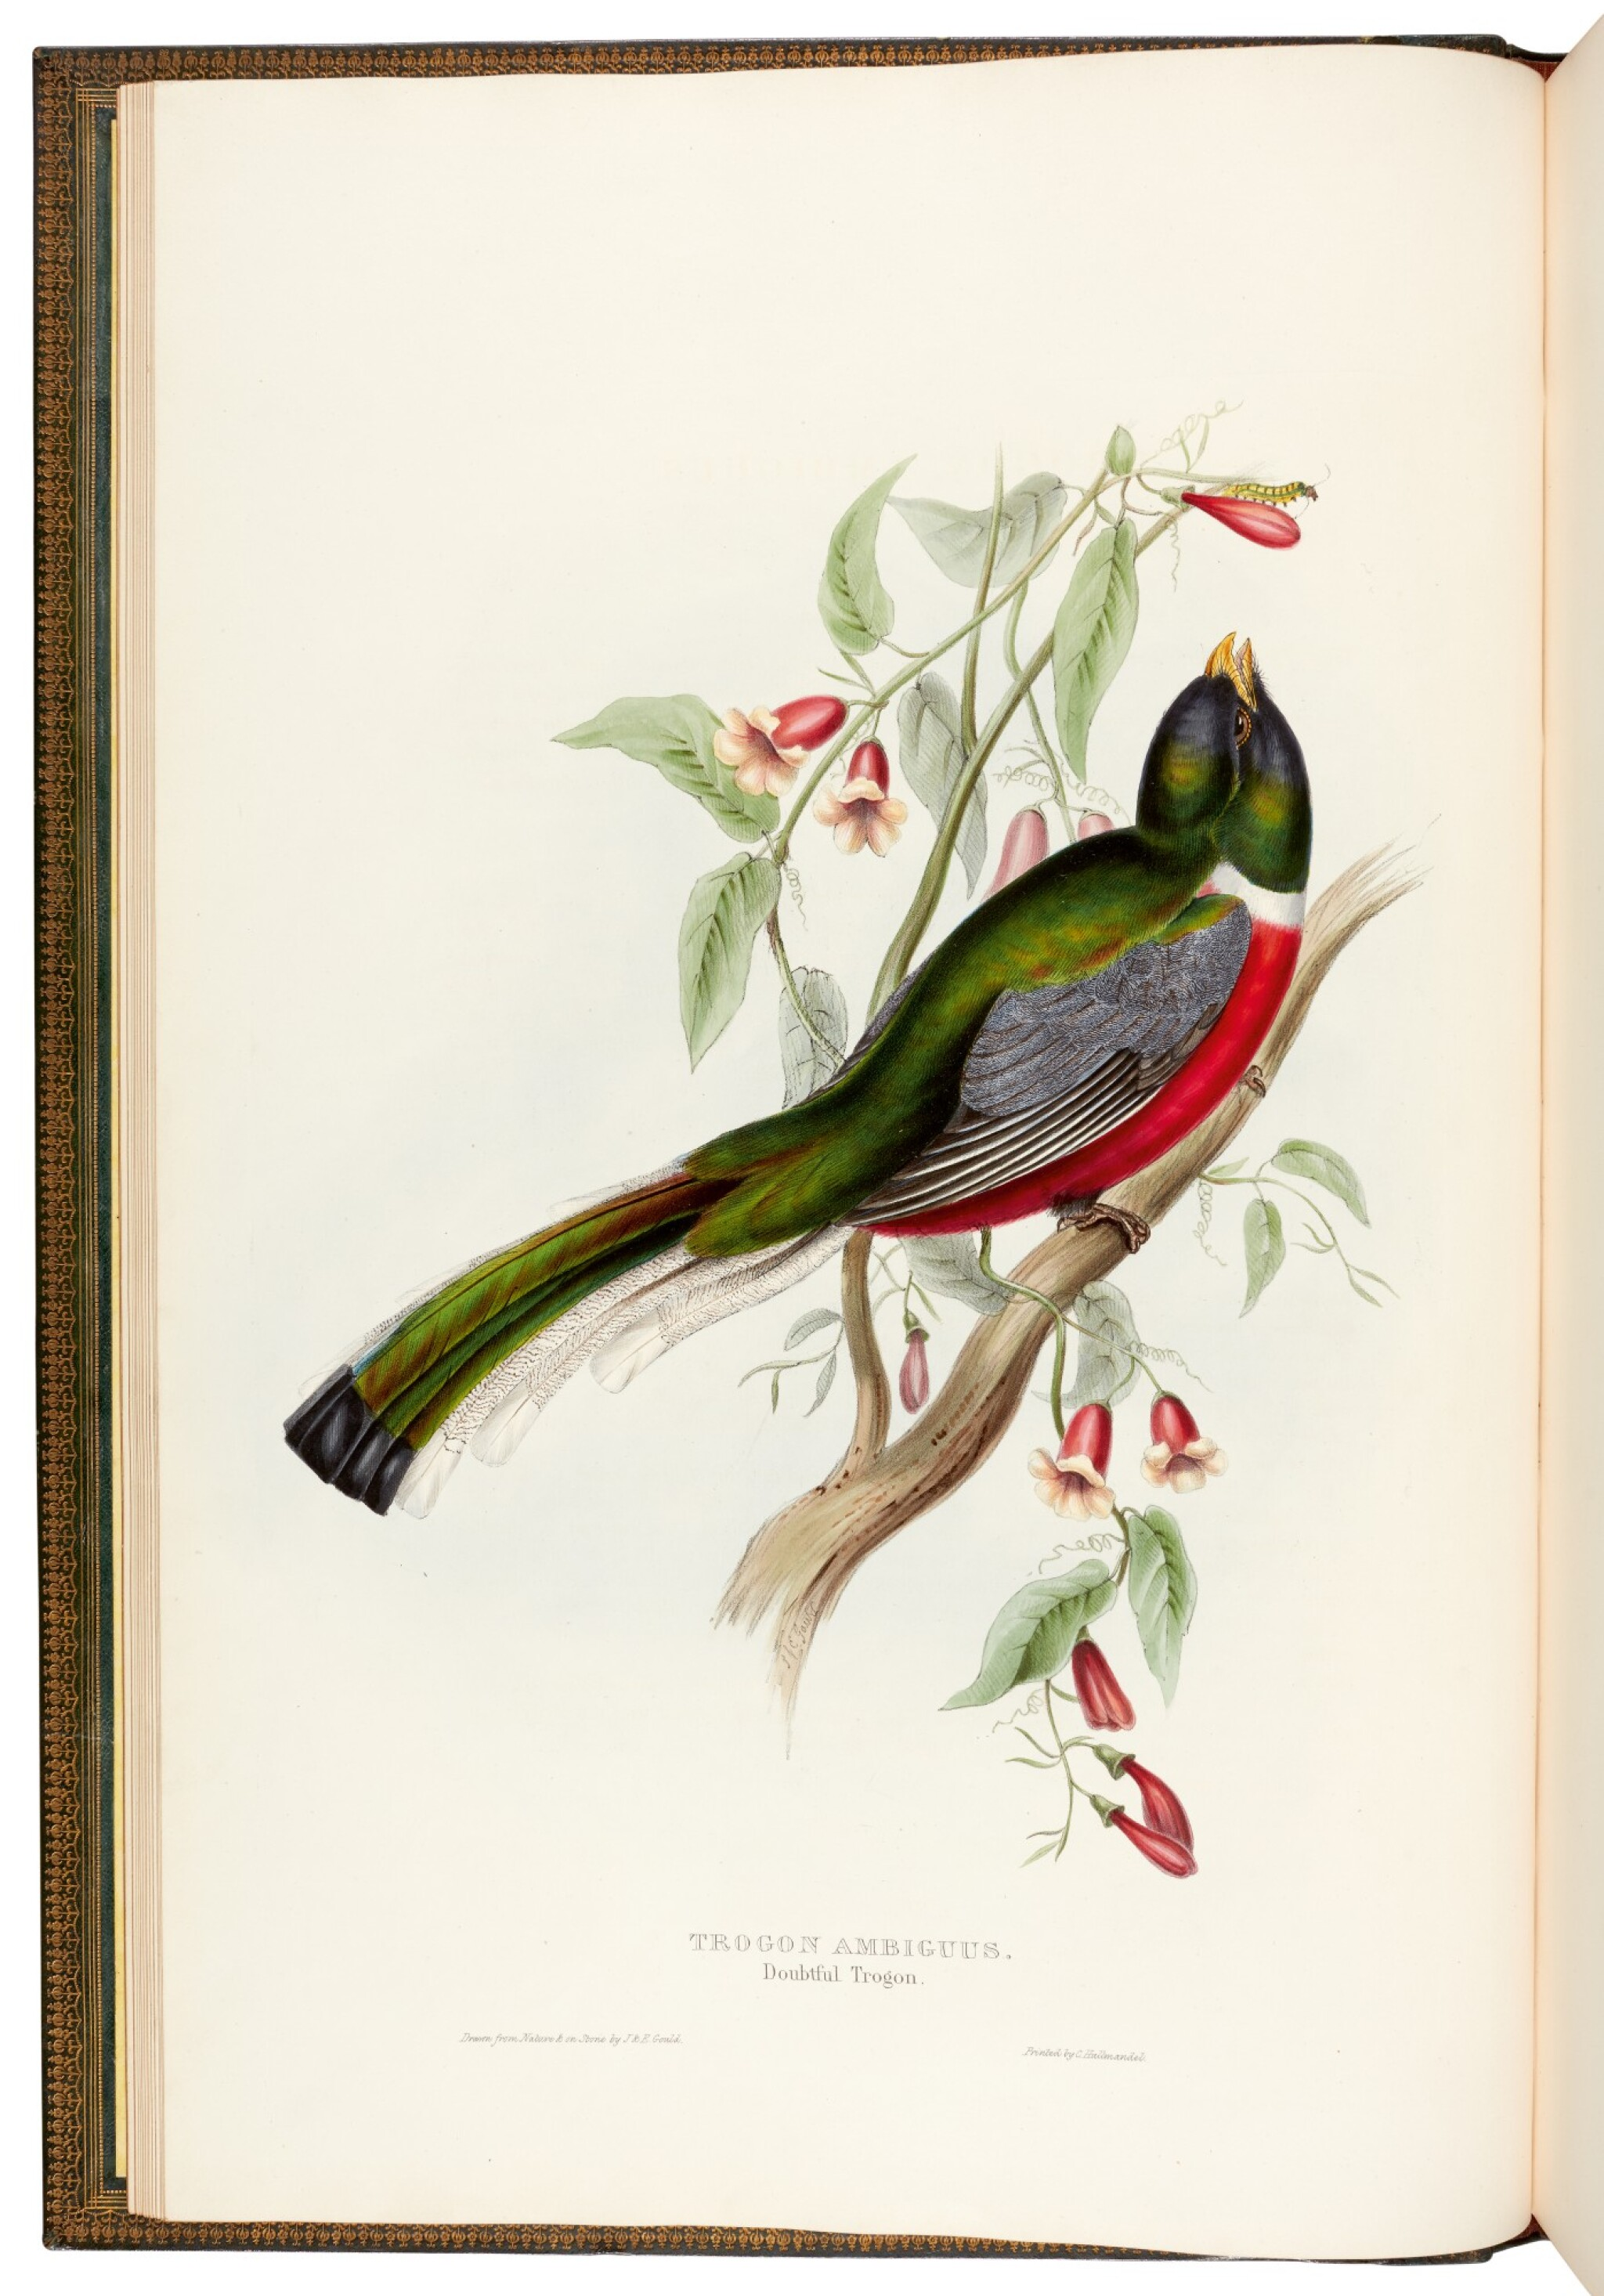 View full screen - View 1 of Lot 37. GOULD, J. | Monograph of the Trogonidae, London 1835-1838, folio.